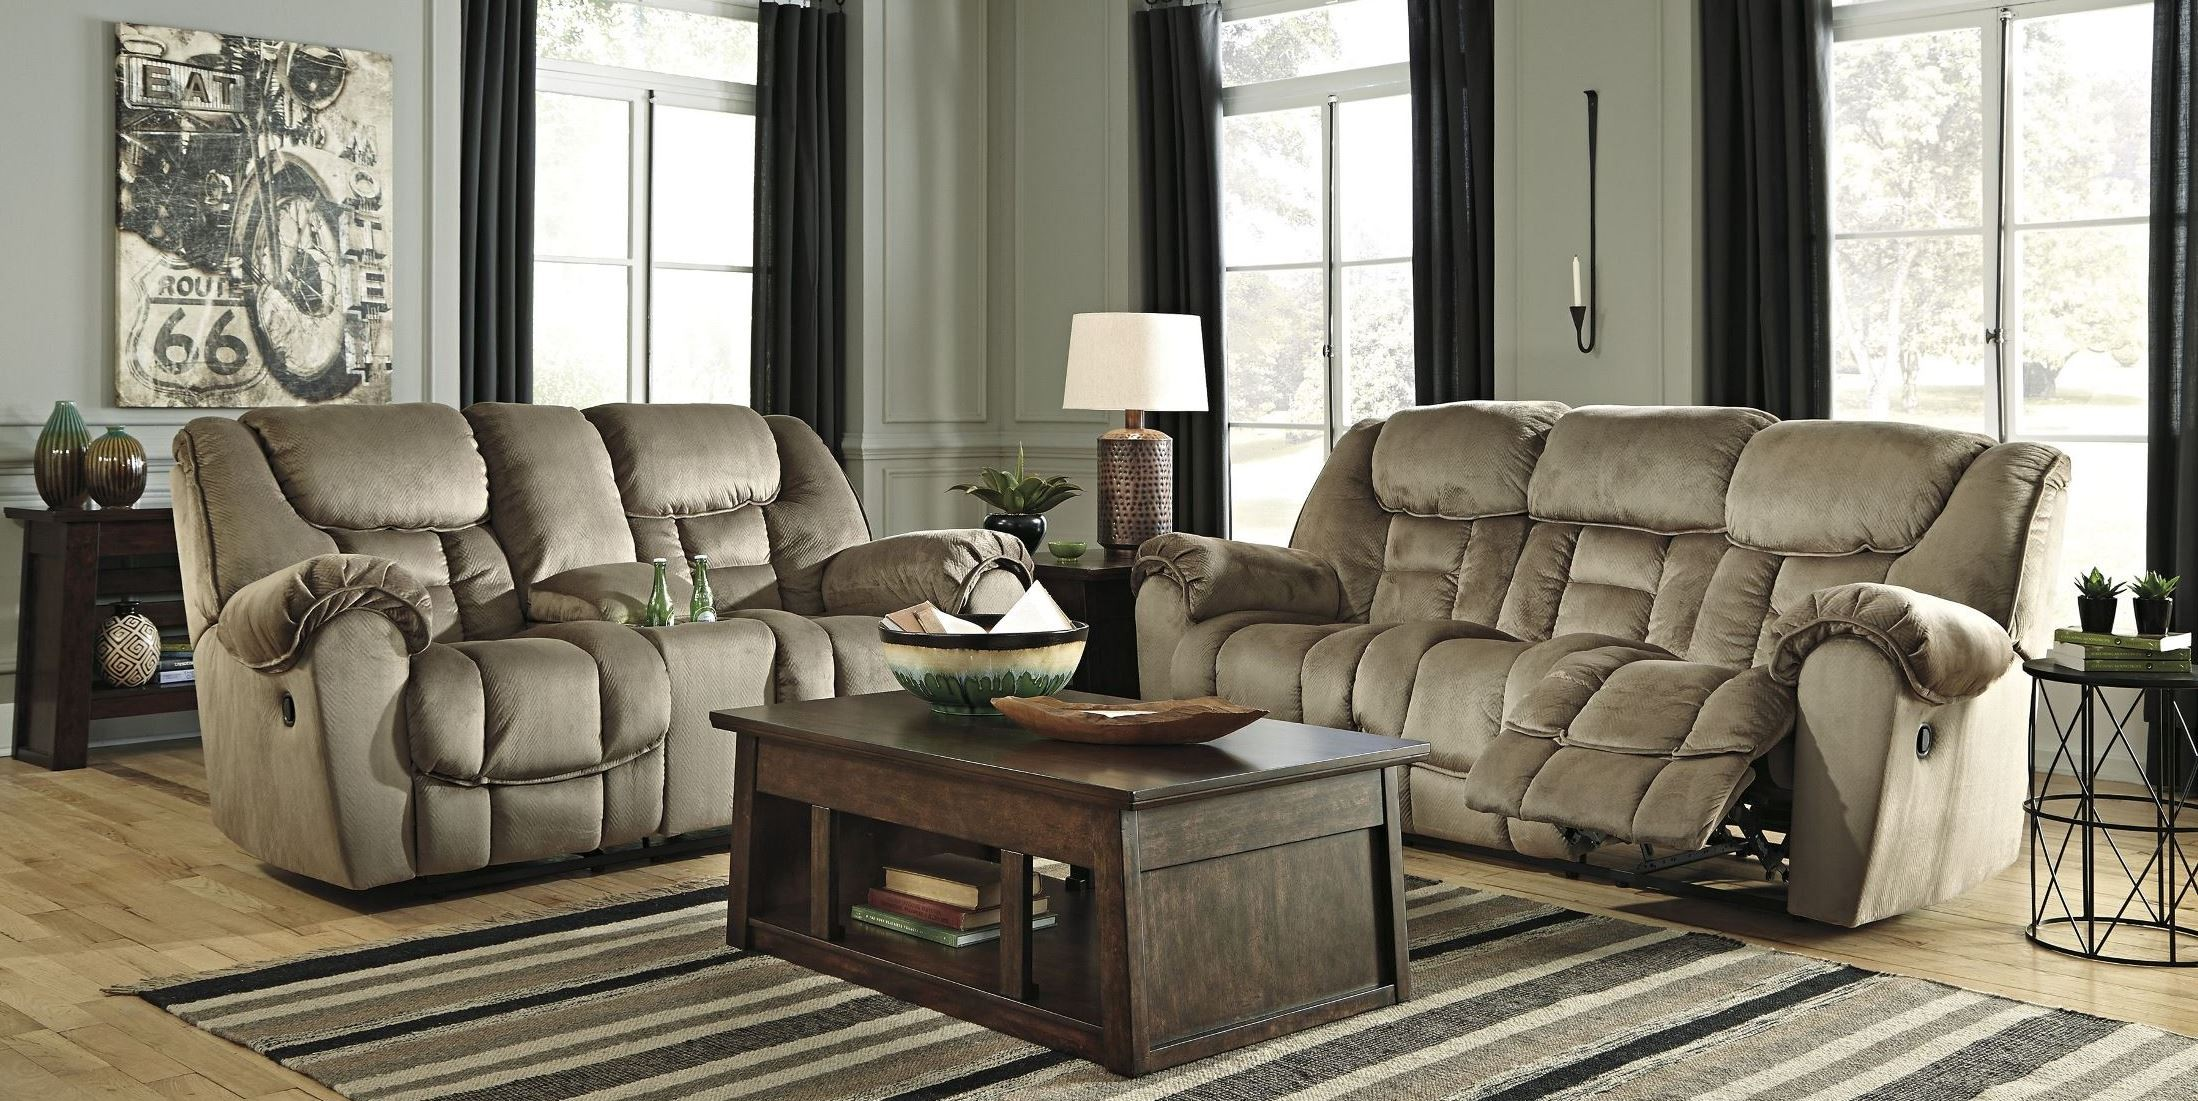 Jodoca Driftwood Reclining Living Room Set From Ashley